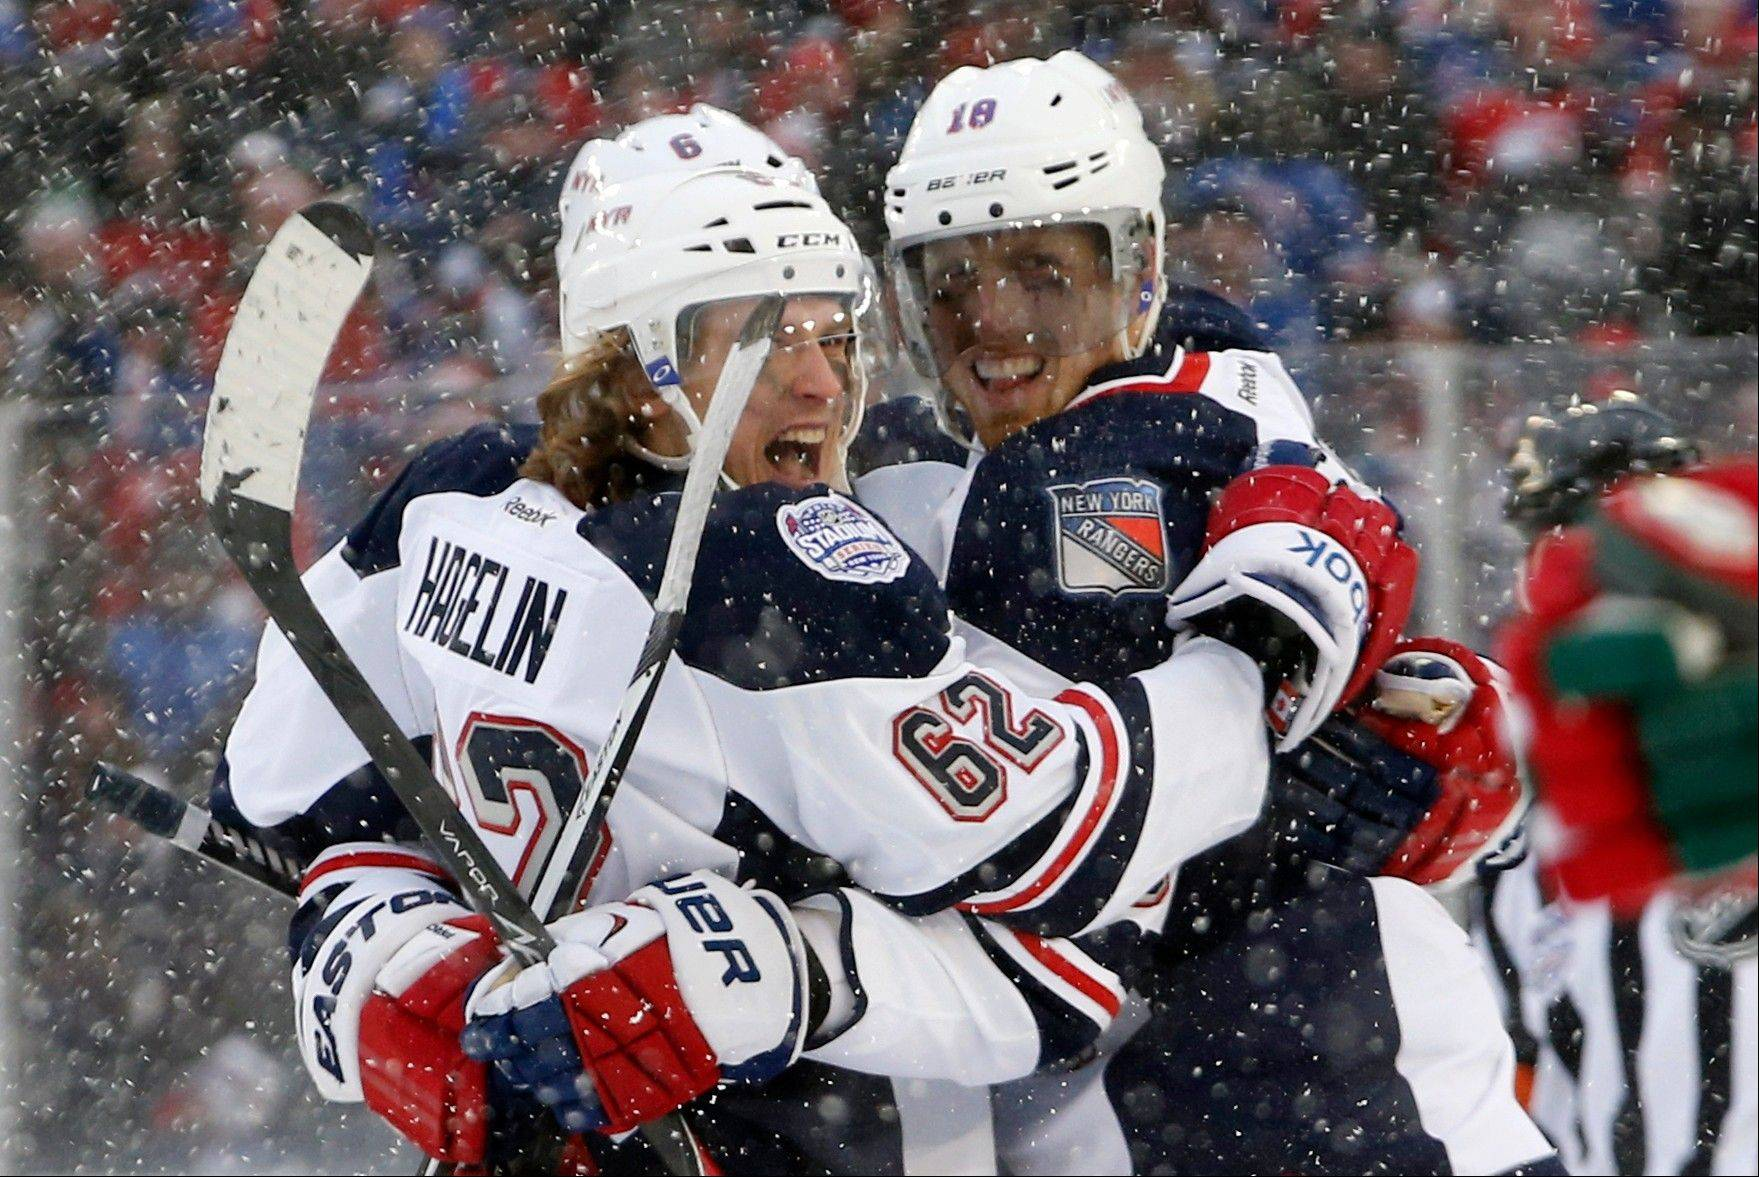 New York Rangers left wing Carl Hagelin (62) celebrates with Rangers defenseman Marc Staal (18) after scoring a goal in the second period of an NHL outdoor hockey game in the snow with New Jersey Devils at Yankee Stadium in New York, Sunday, Jan. 26, 2014. It is the first time a hockey game has been played in Yankee Stadium.